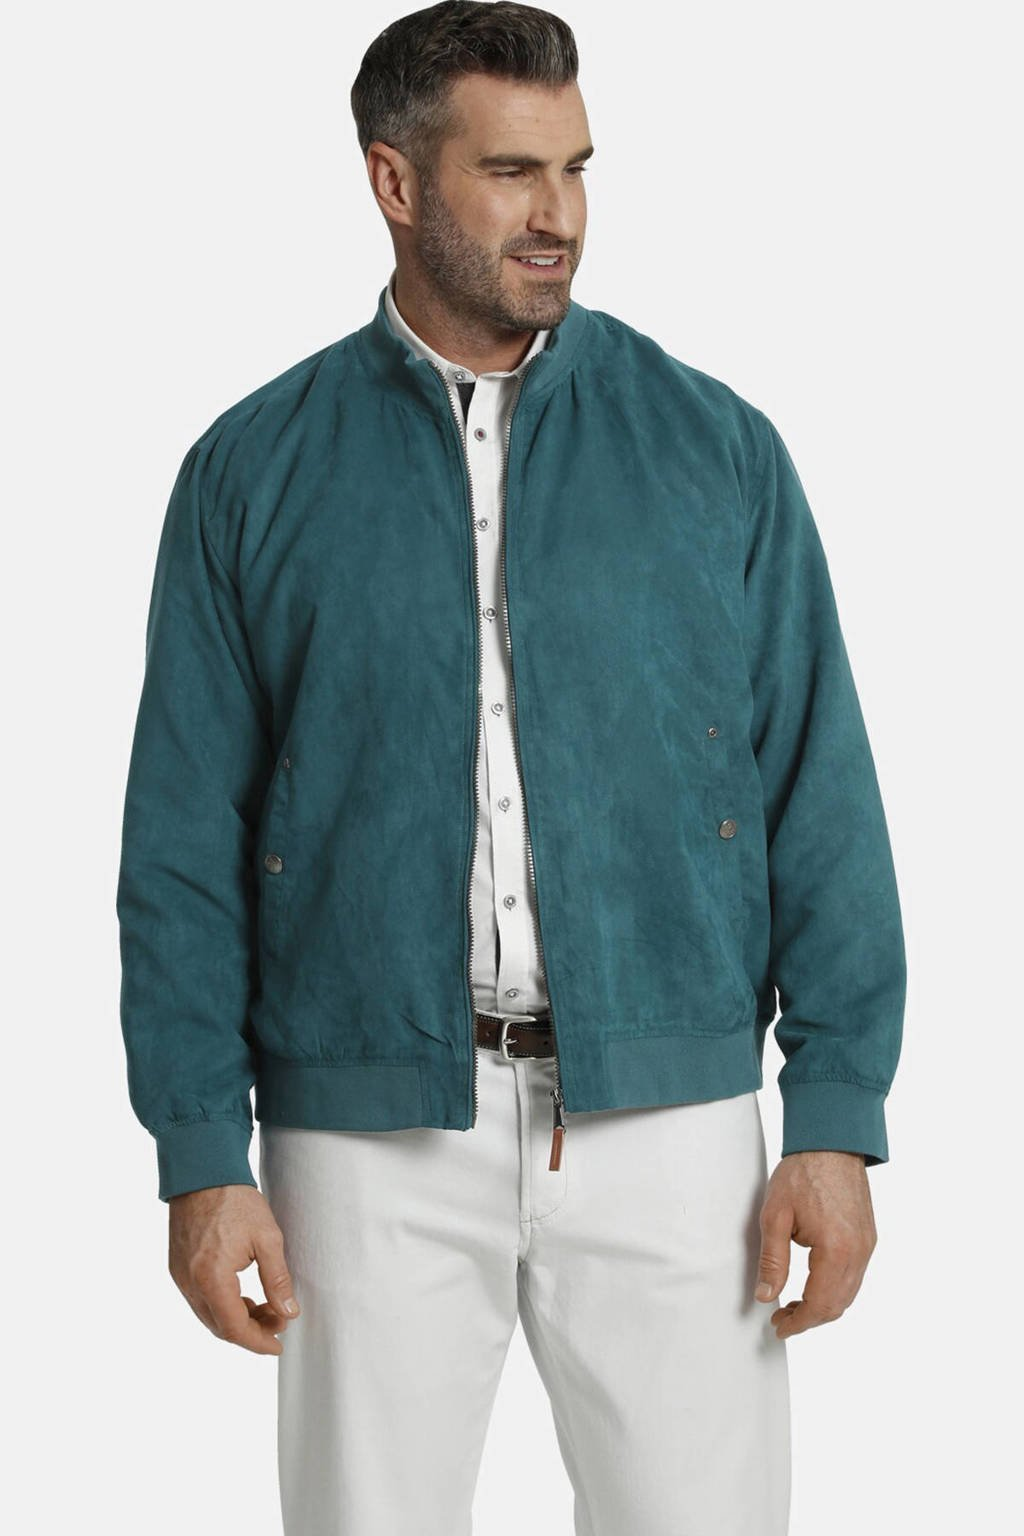 Charles Colby jack zomer SIR BAXTER Plus Size groen, Groen